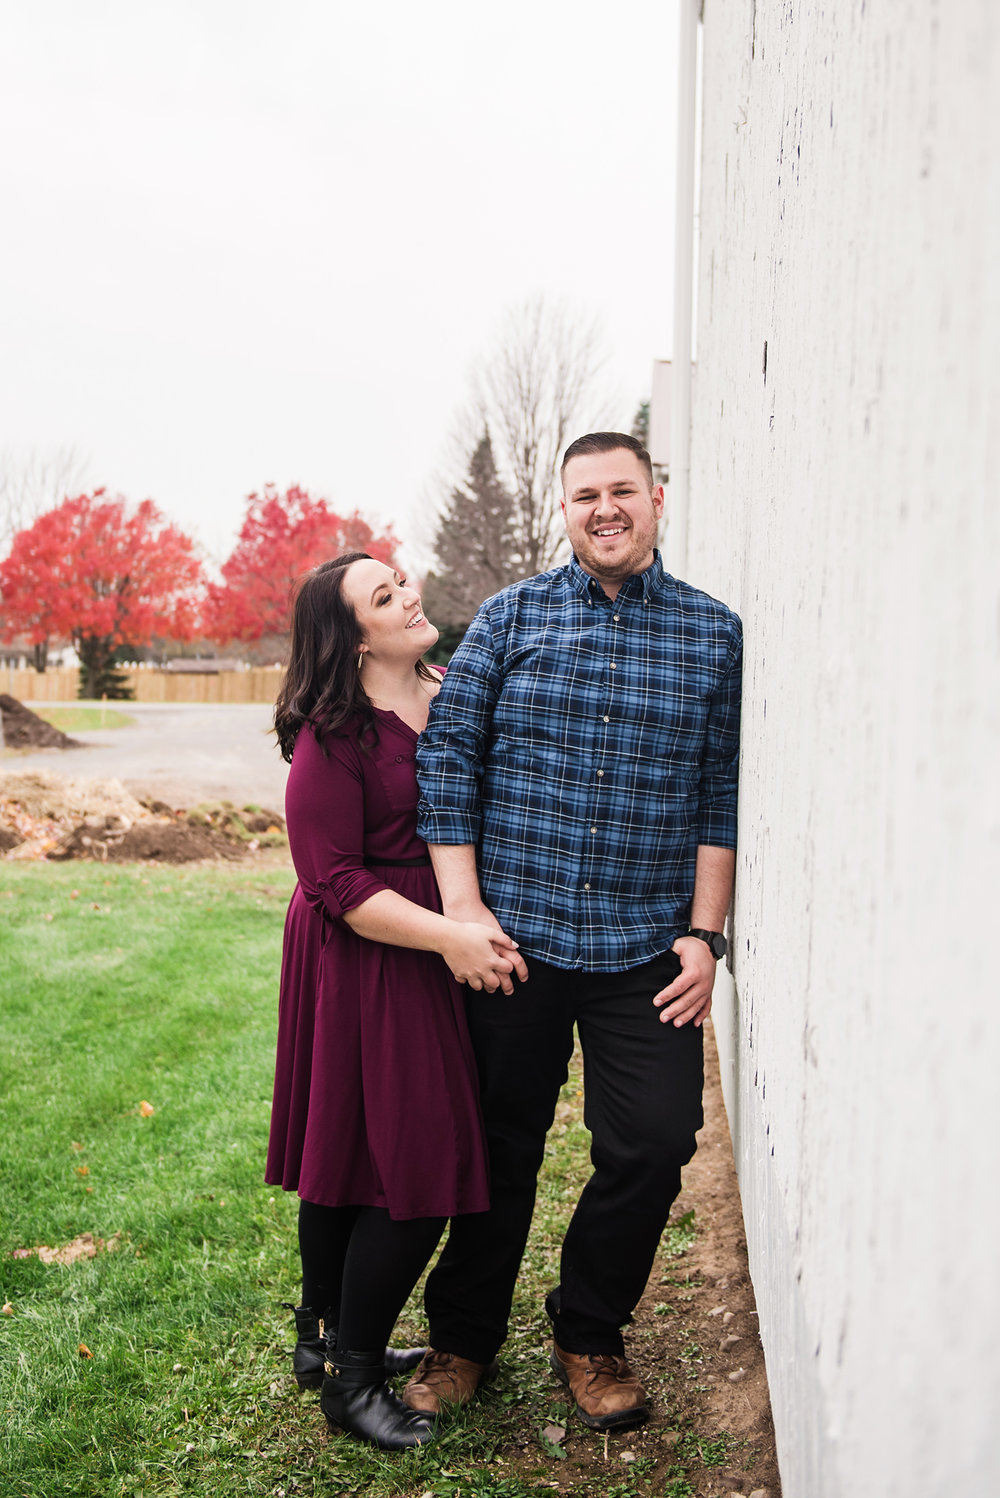 Tinker_Nature_Park_Rochester_Engagement_Session_JILL_STUDIO_Rochester_NY_Photographer_DSC_0587.jpg